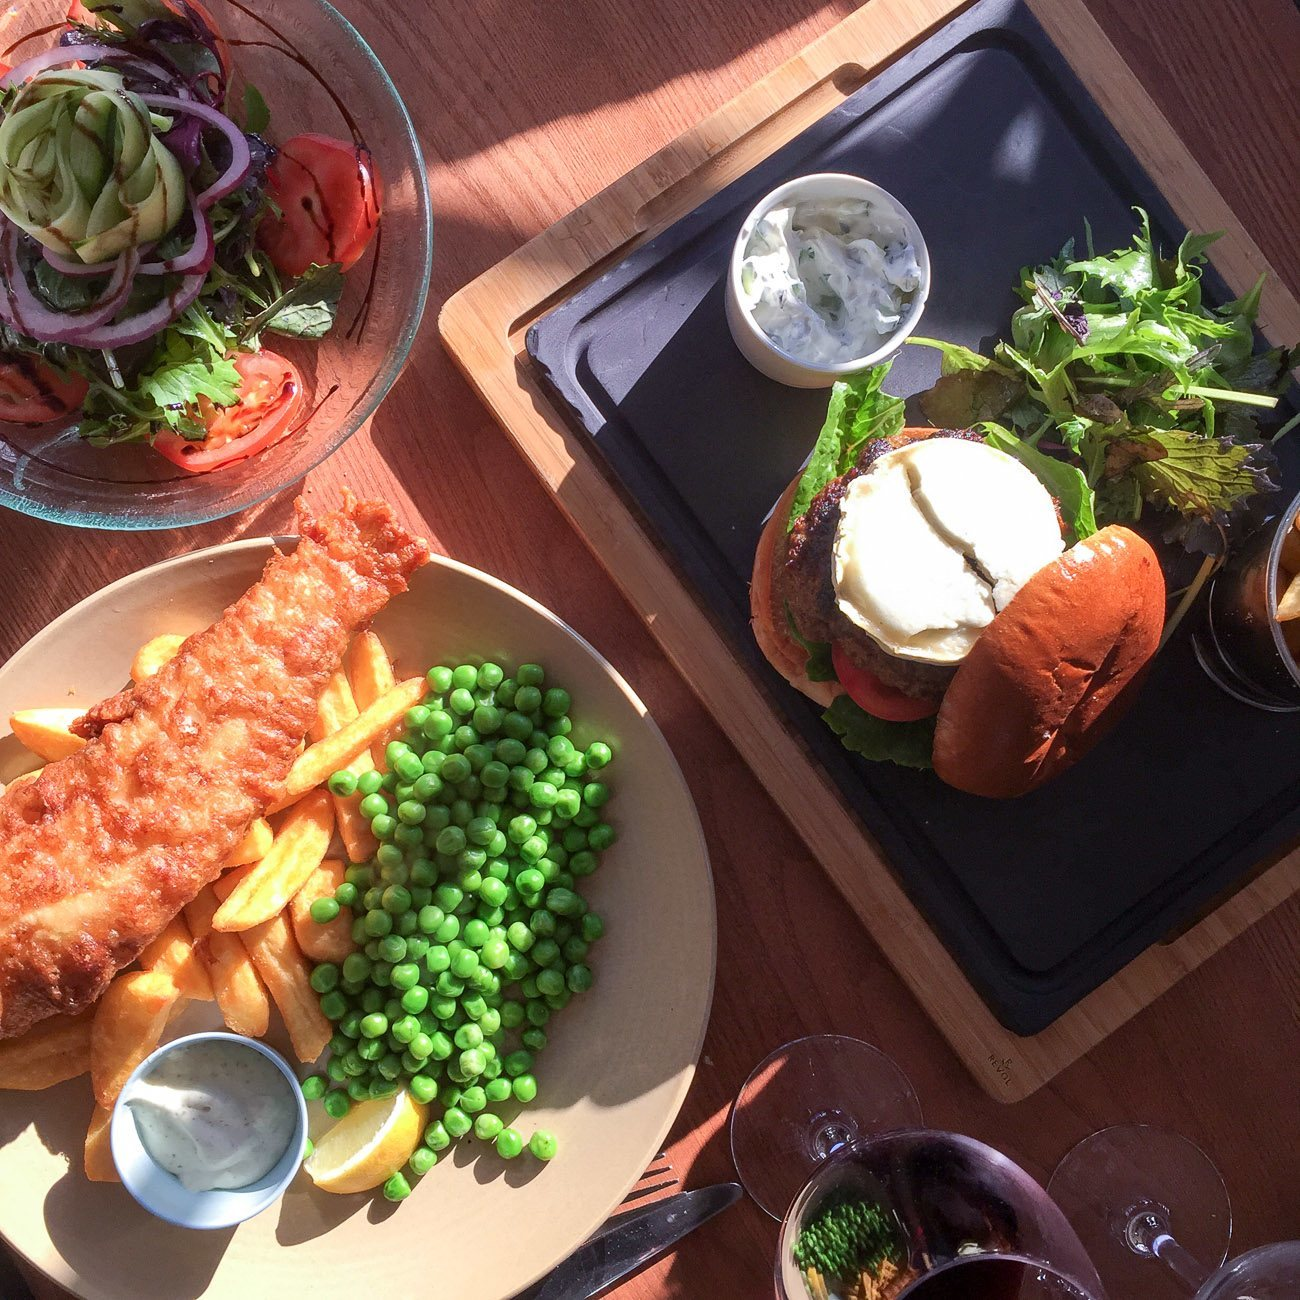 The Exchequer Pub is near Four Seasons Hotel Hampshire, England and absolutely delicious.